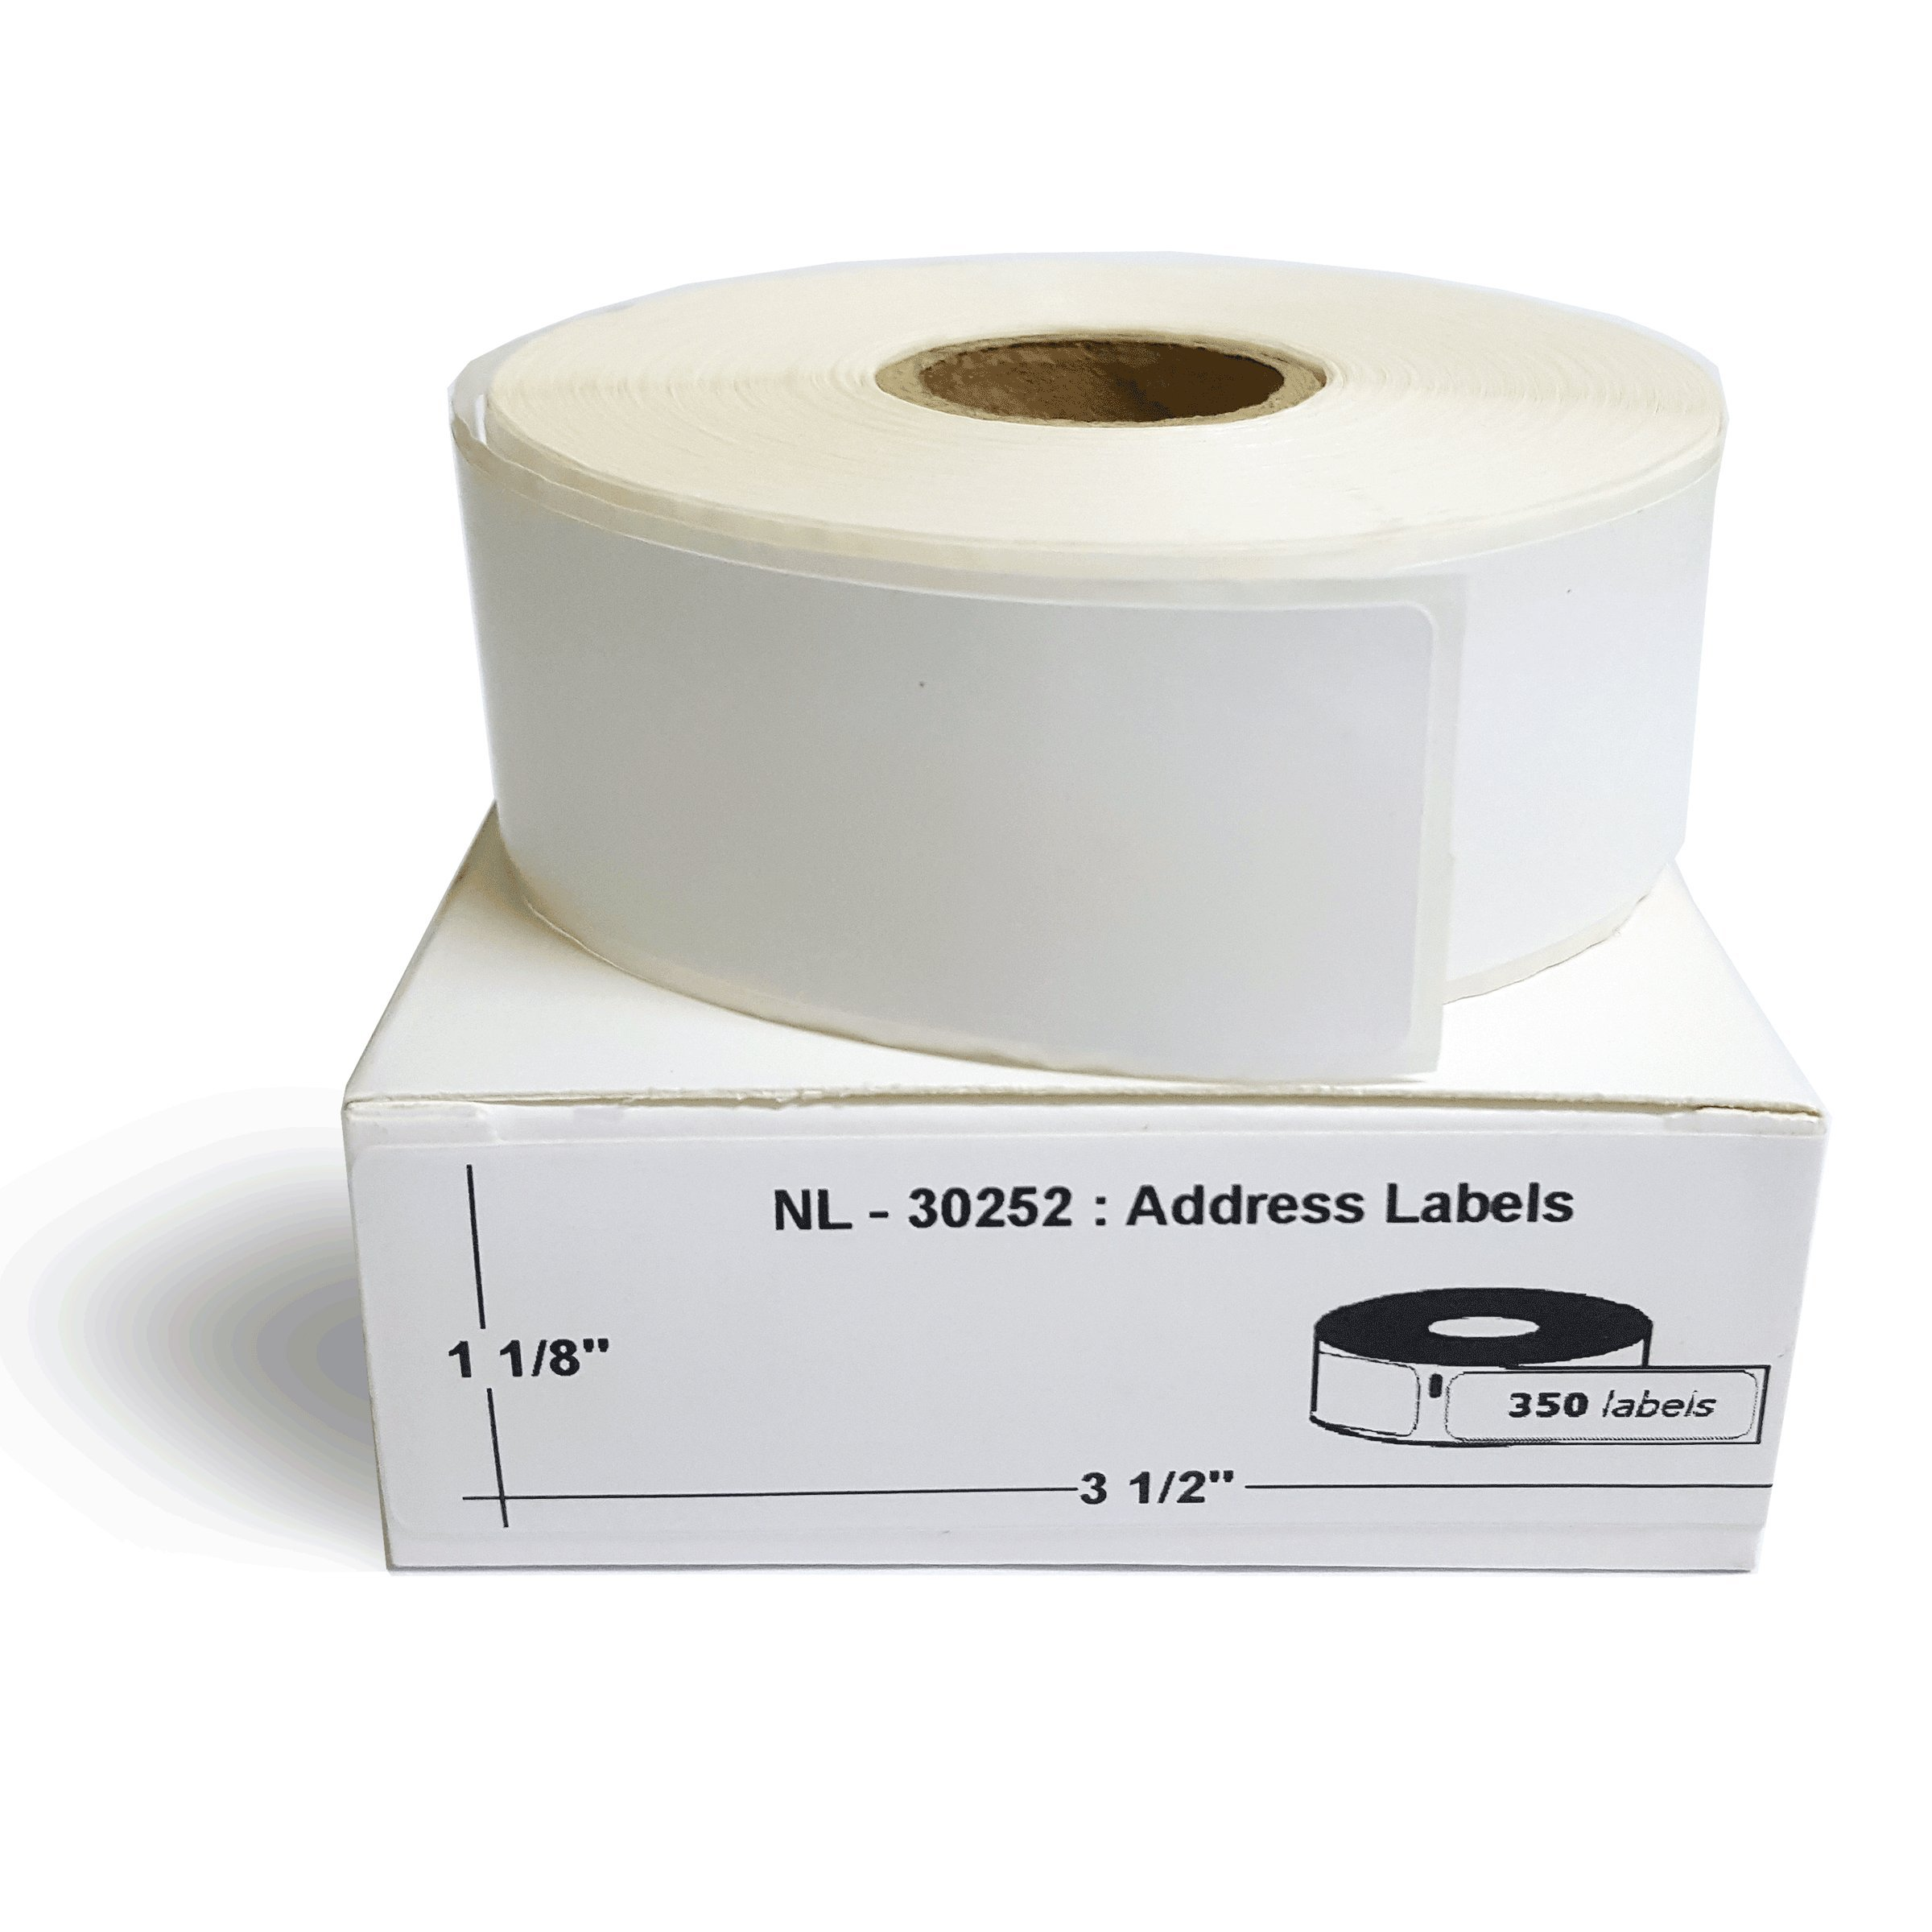 Dymo Printer Compatible Label 30252 (Size 1-1/8'' x 3-1/2'' - 24 Rolls : 350 Labels Each Roll) (24 Rolls)